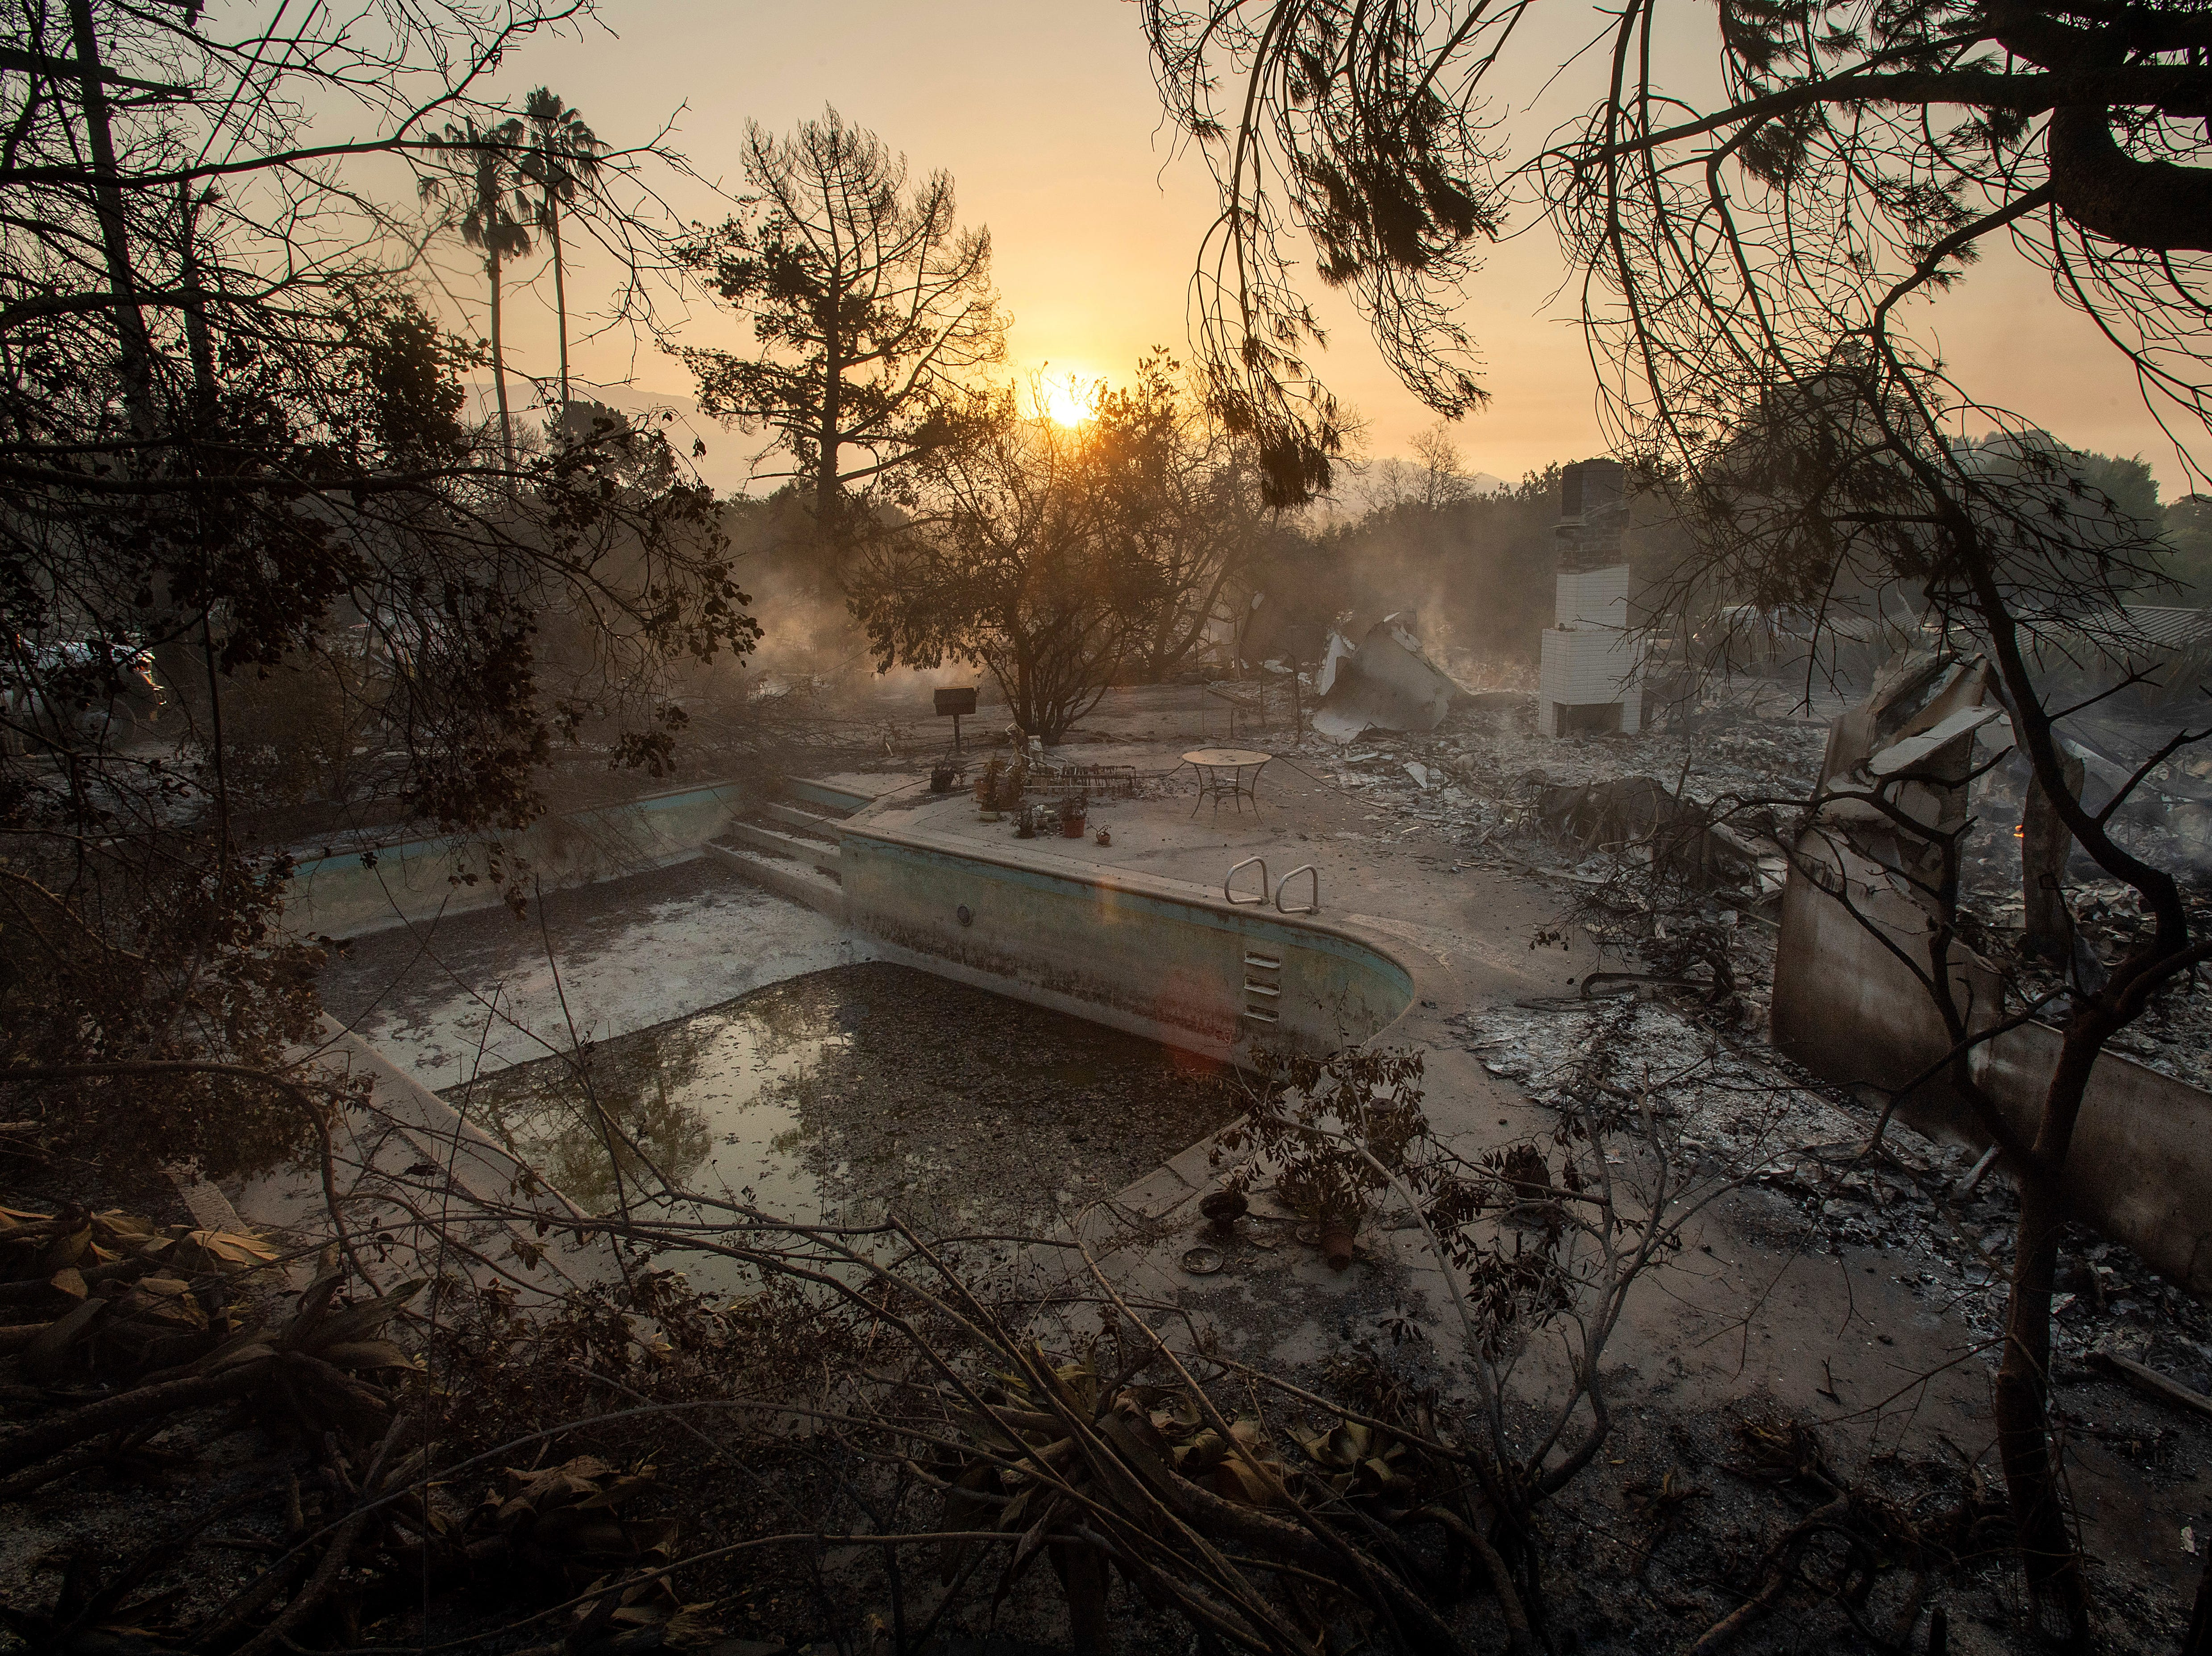 July 7, 2018: The sun rises behind a home leveled by the Holiday fire in Goleta, Calif. Evacuations were ordered as the fire edged into residential areas.